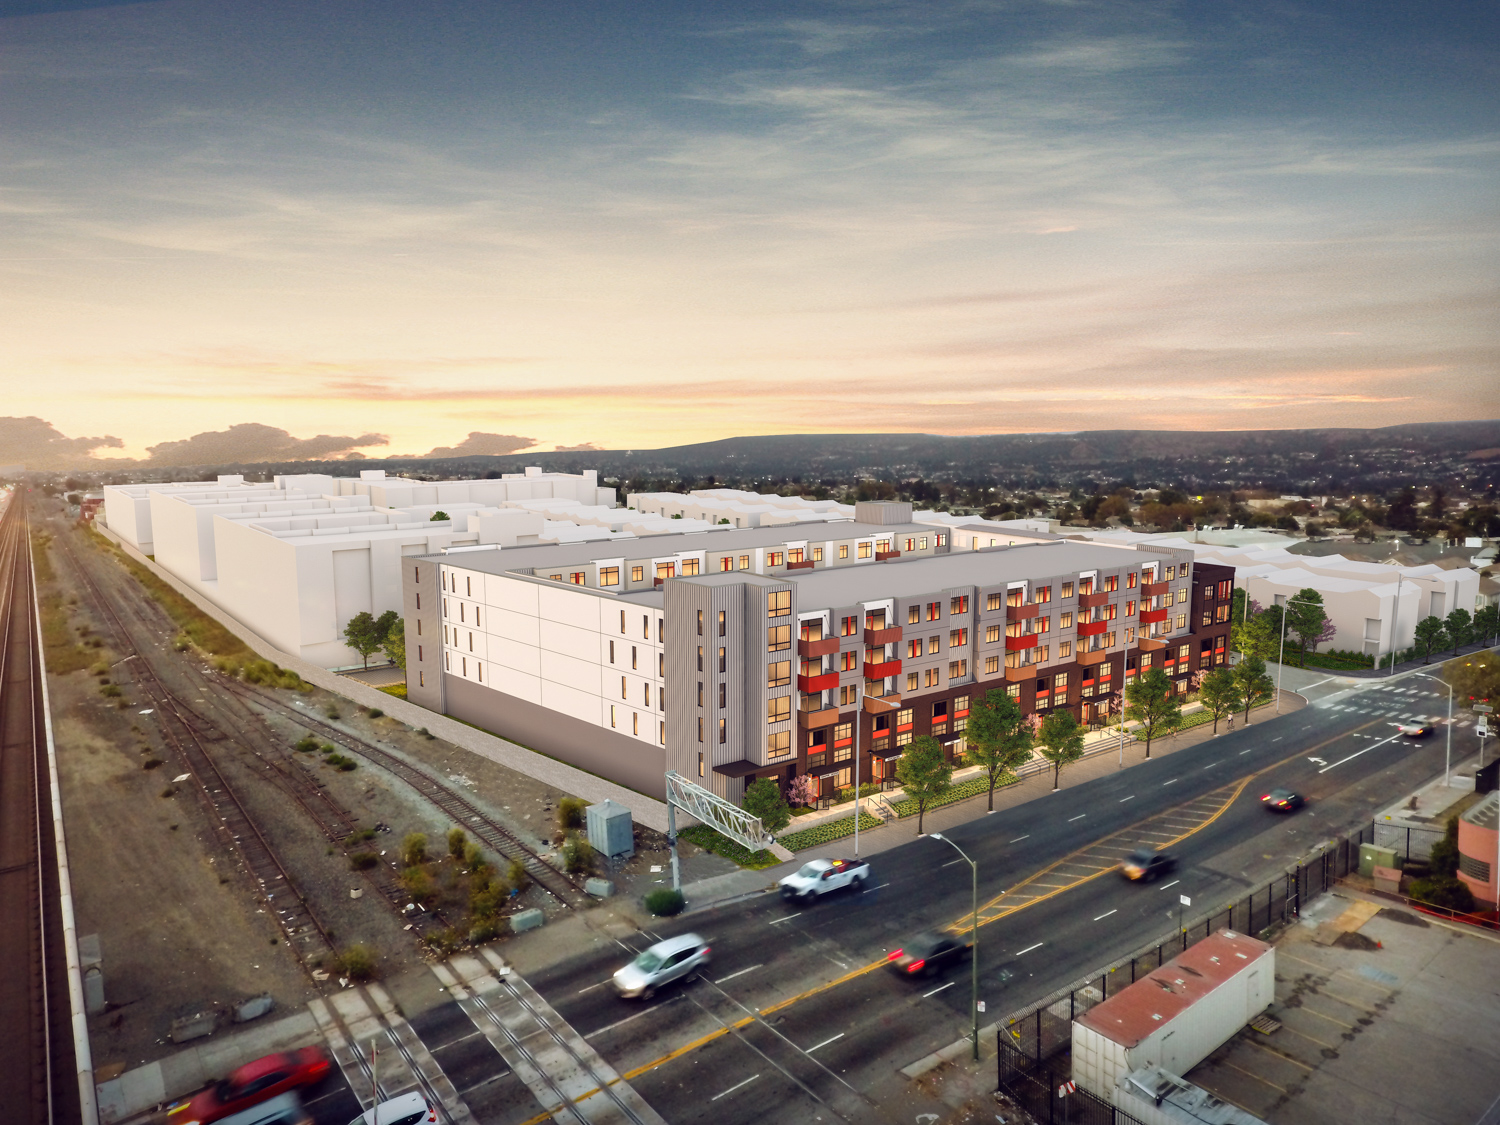 921 98th Street view from BART, image courtesy Madison Park